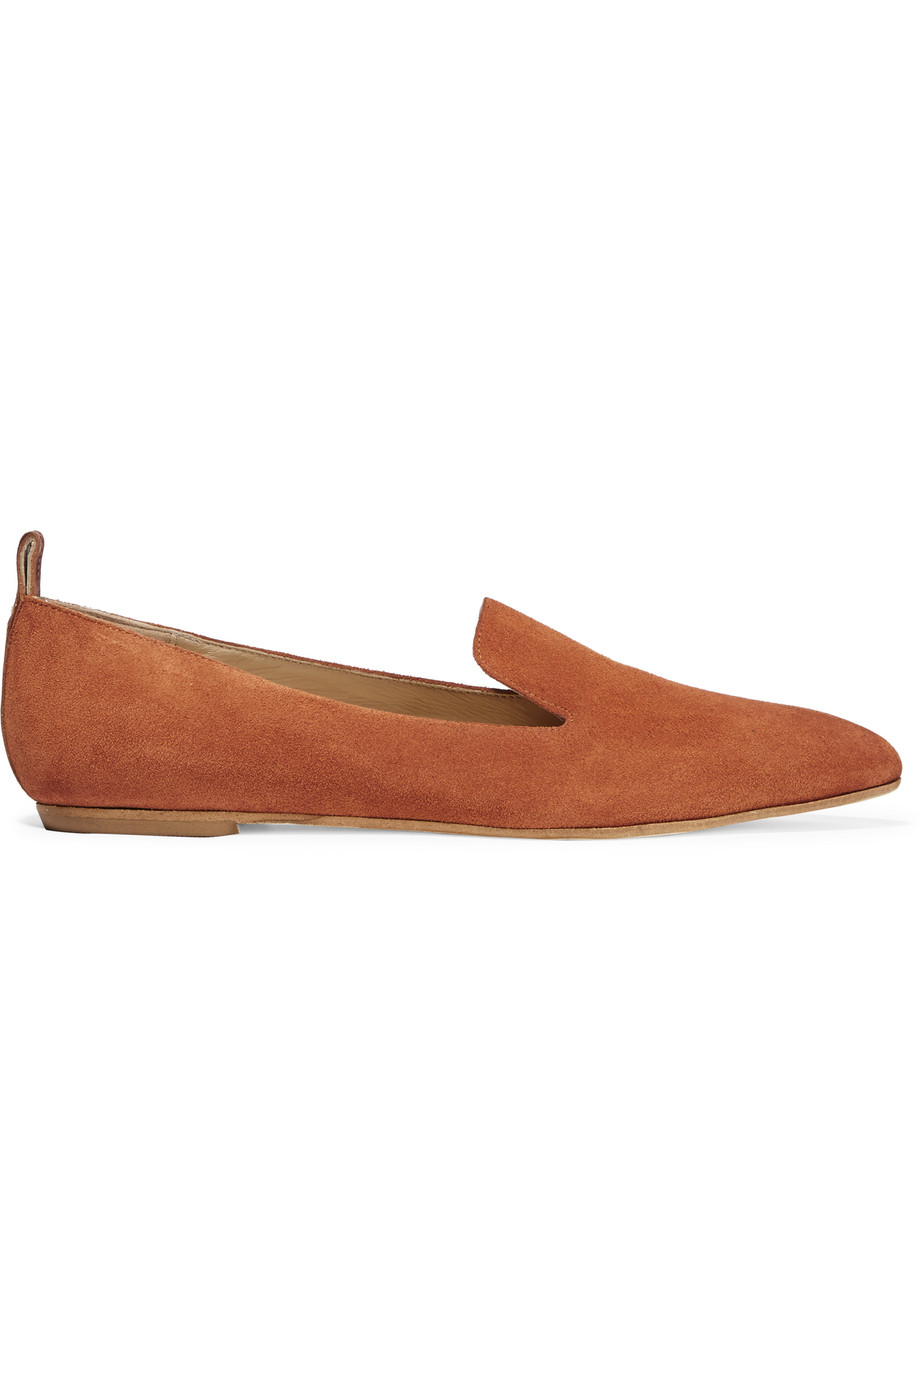 ATP Atelier Greta Leather-Trimmed Suede Point-Toe Flats, Brick, Women's US Size: 4.5, Size: 35